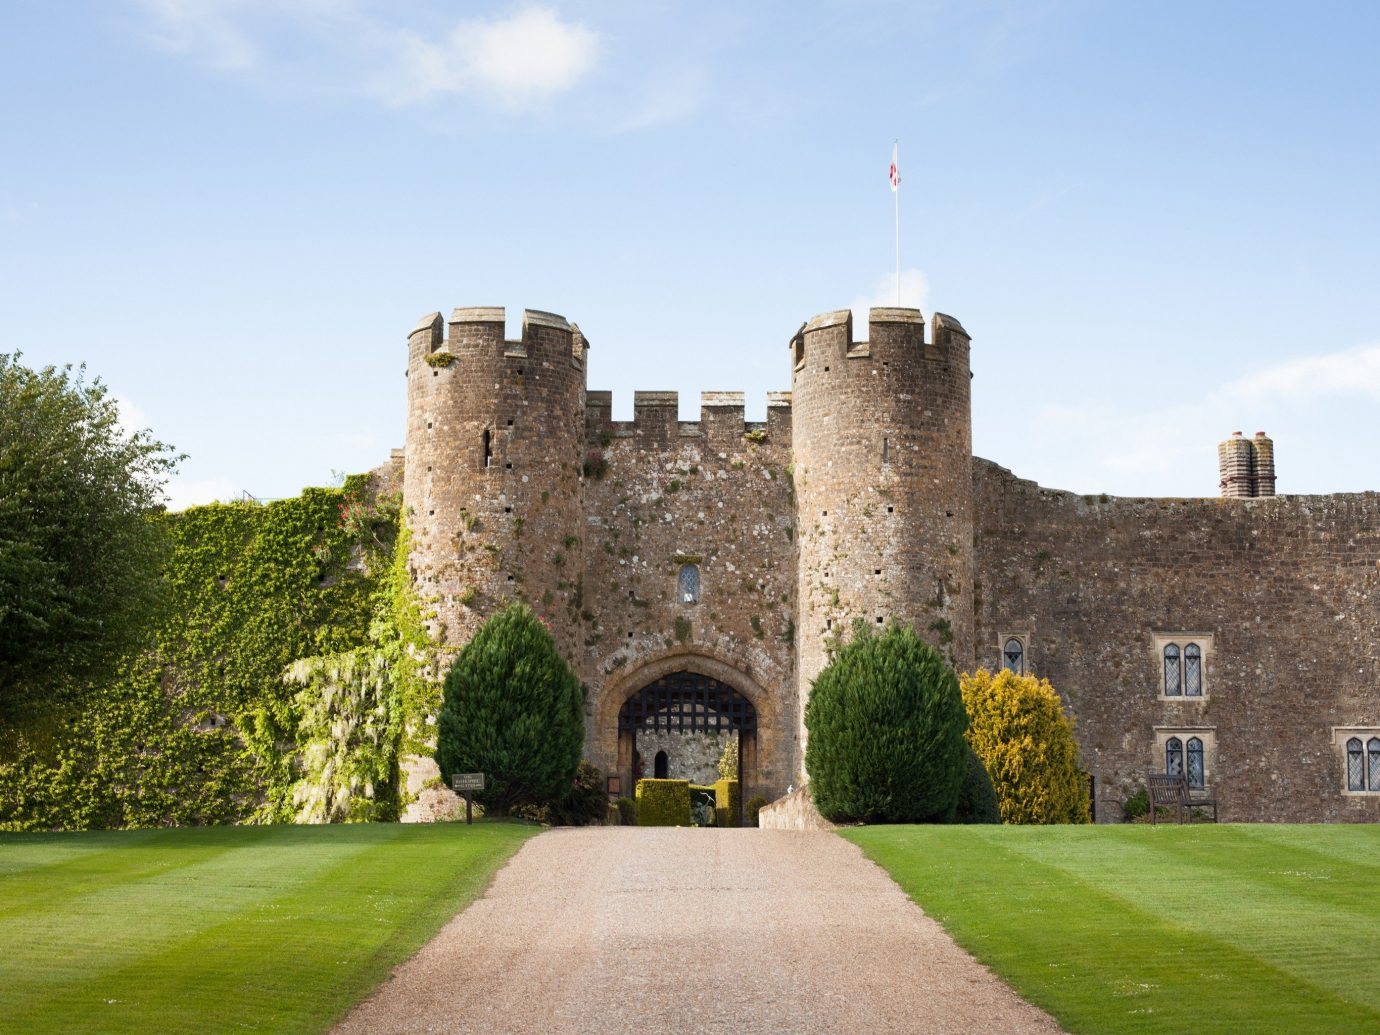 Hotels sky outdoor grass tree building castle château stately home brick estate fortification stone moat water castle monastery abbey old manor house